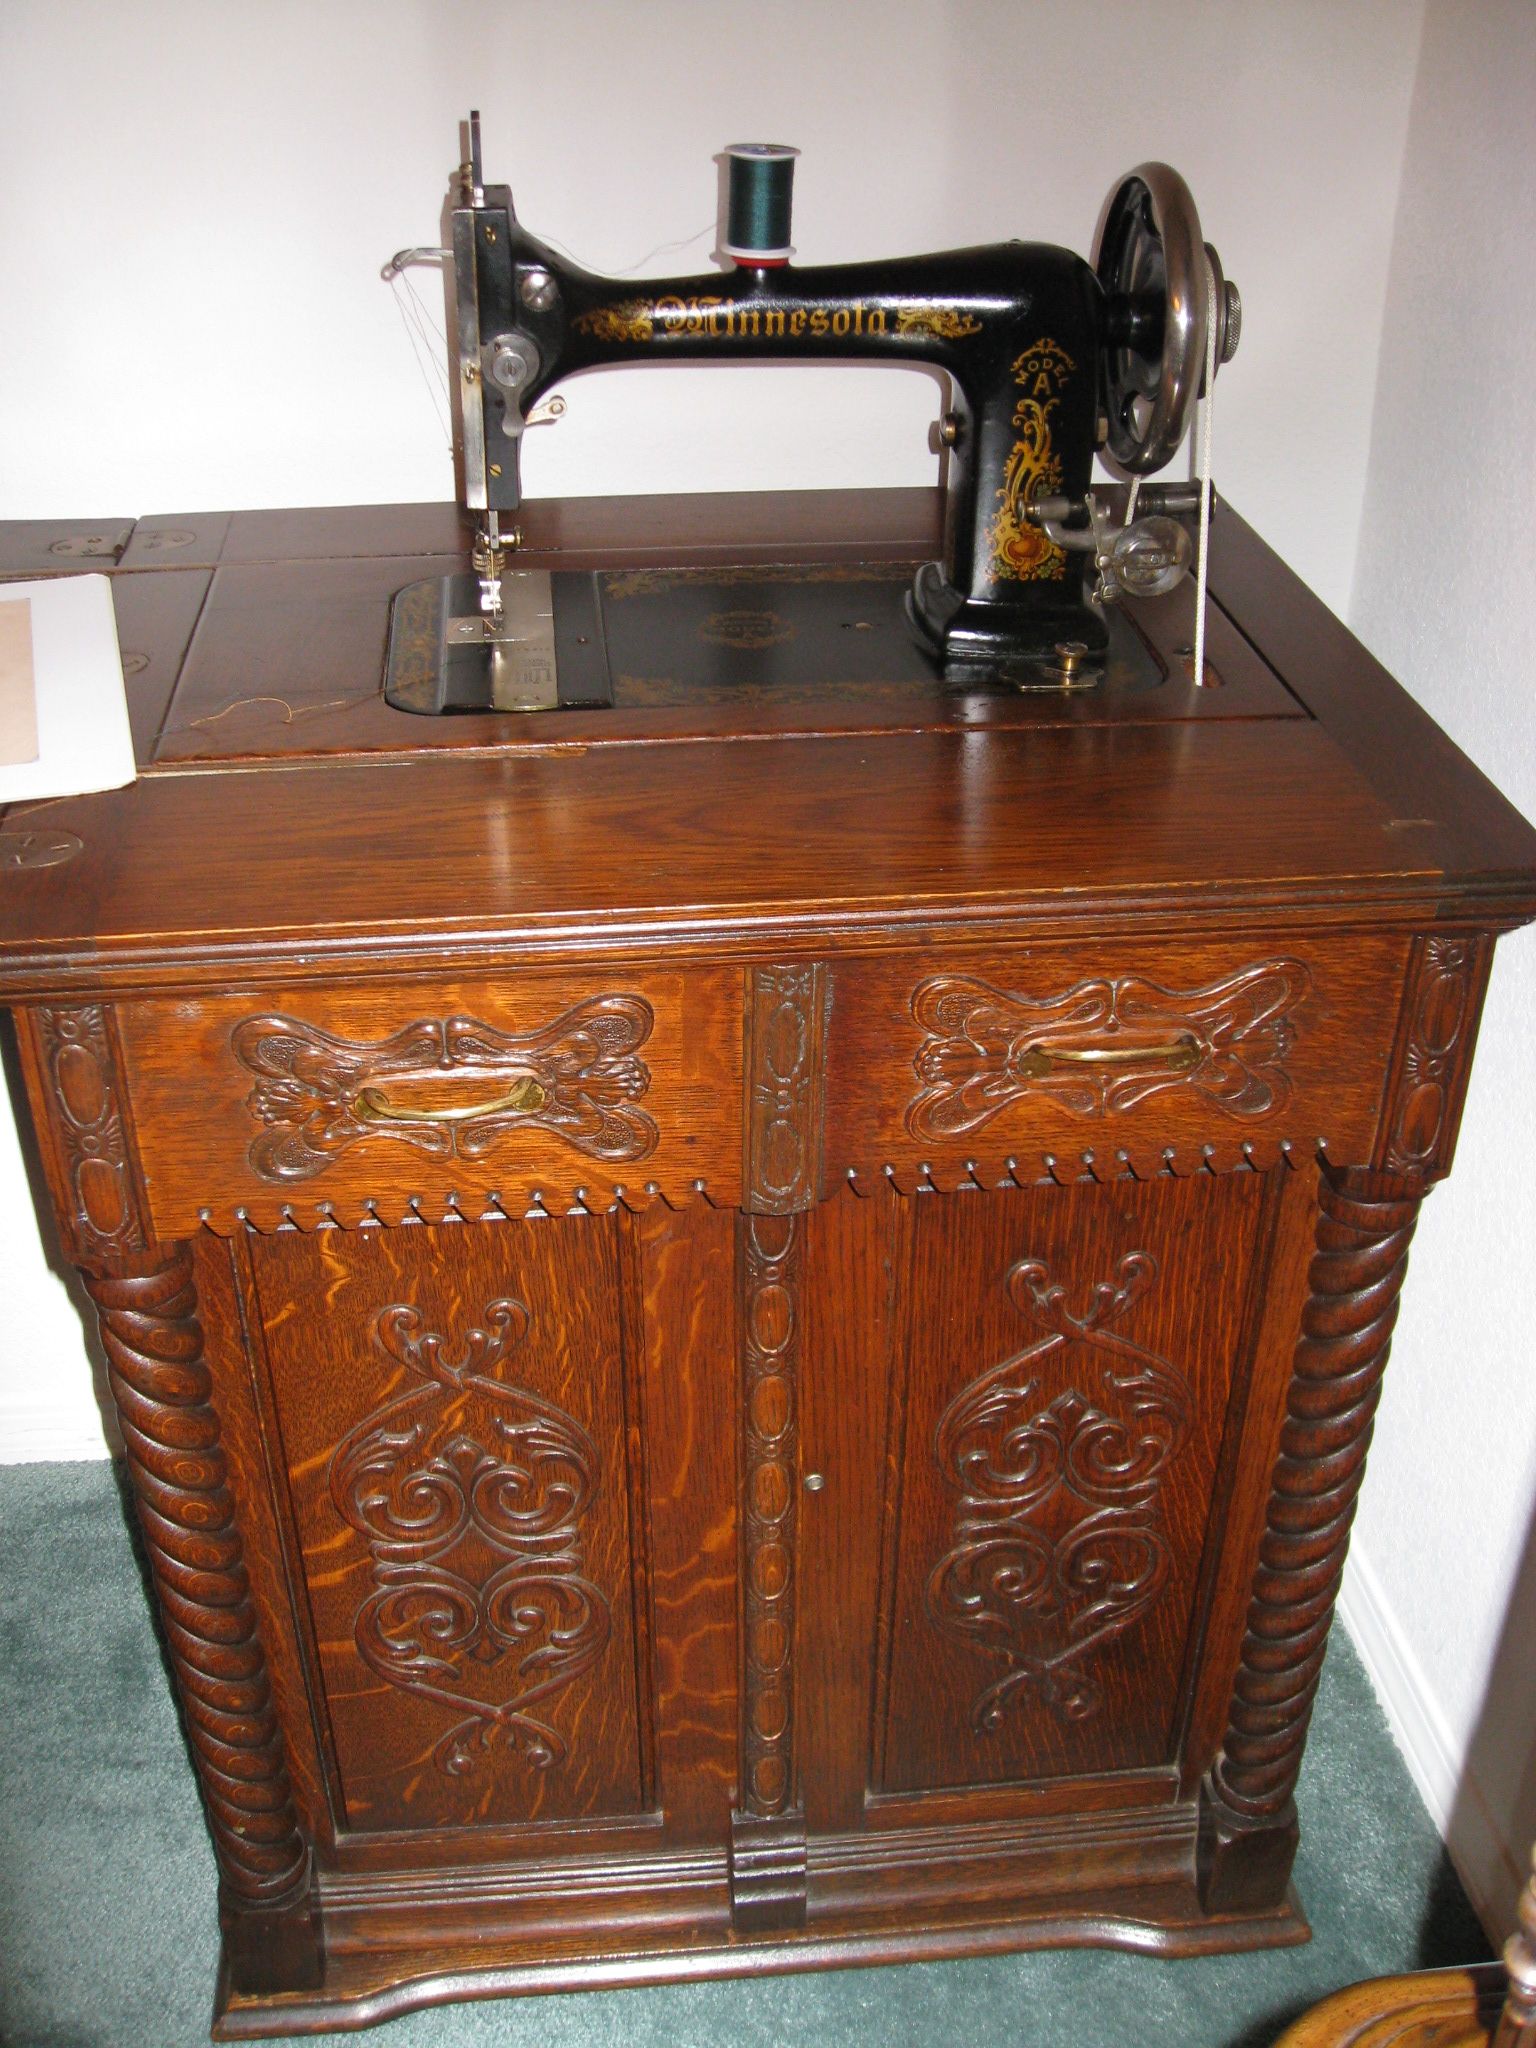 I have several antique ... - Treadle Sewing Machines The Quilted Peppers